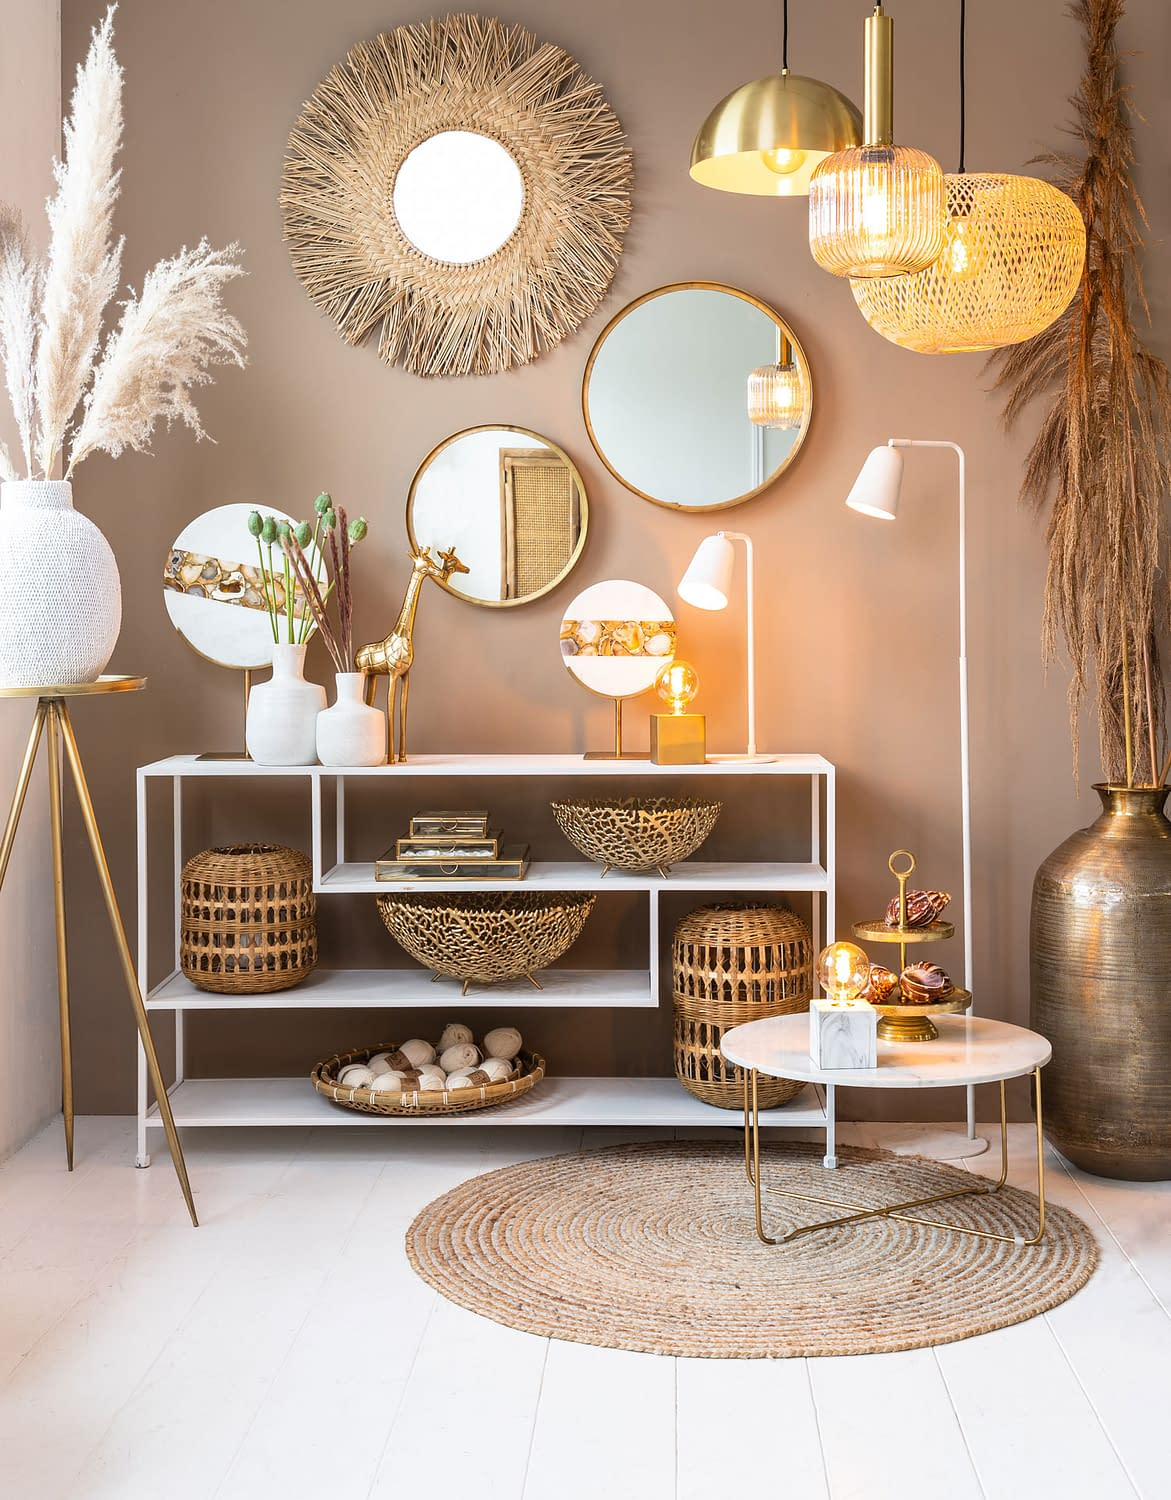 Styling tips zomer interieur